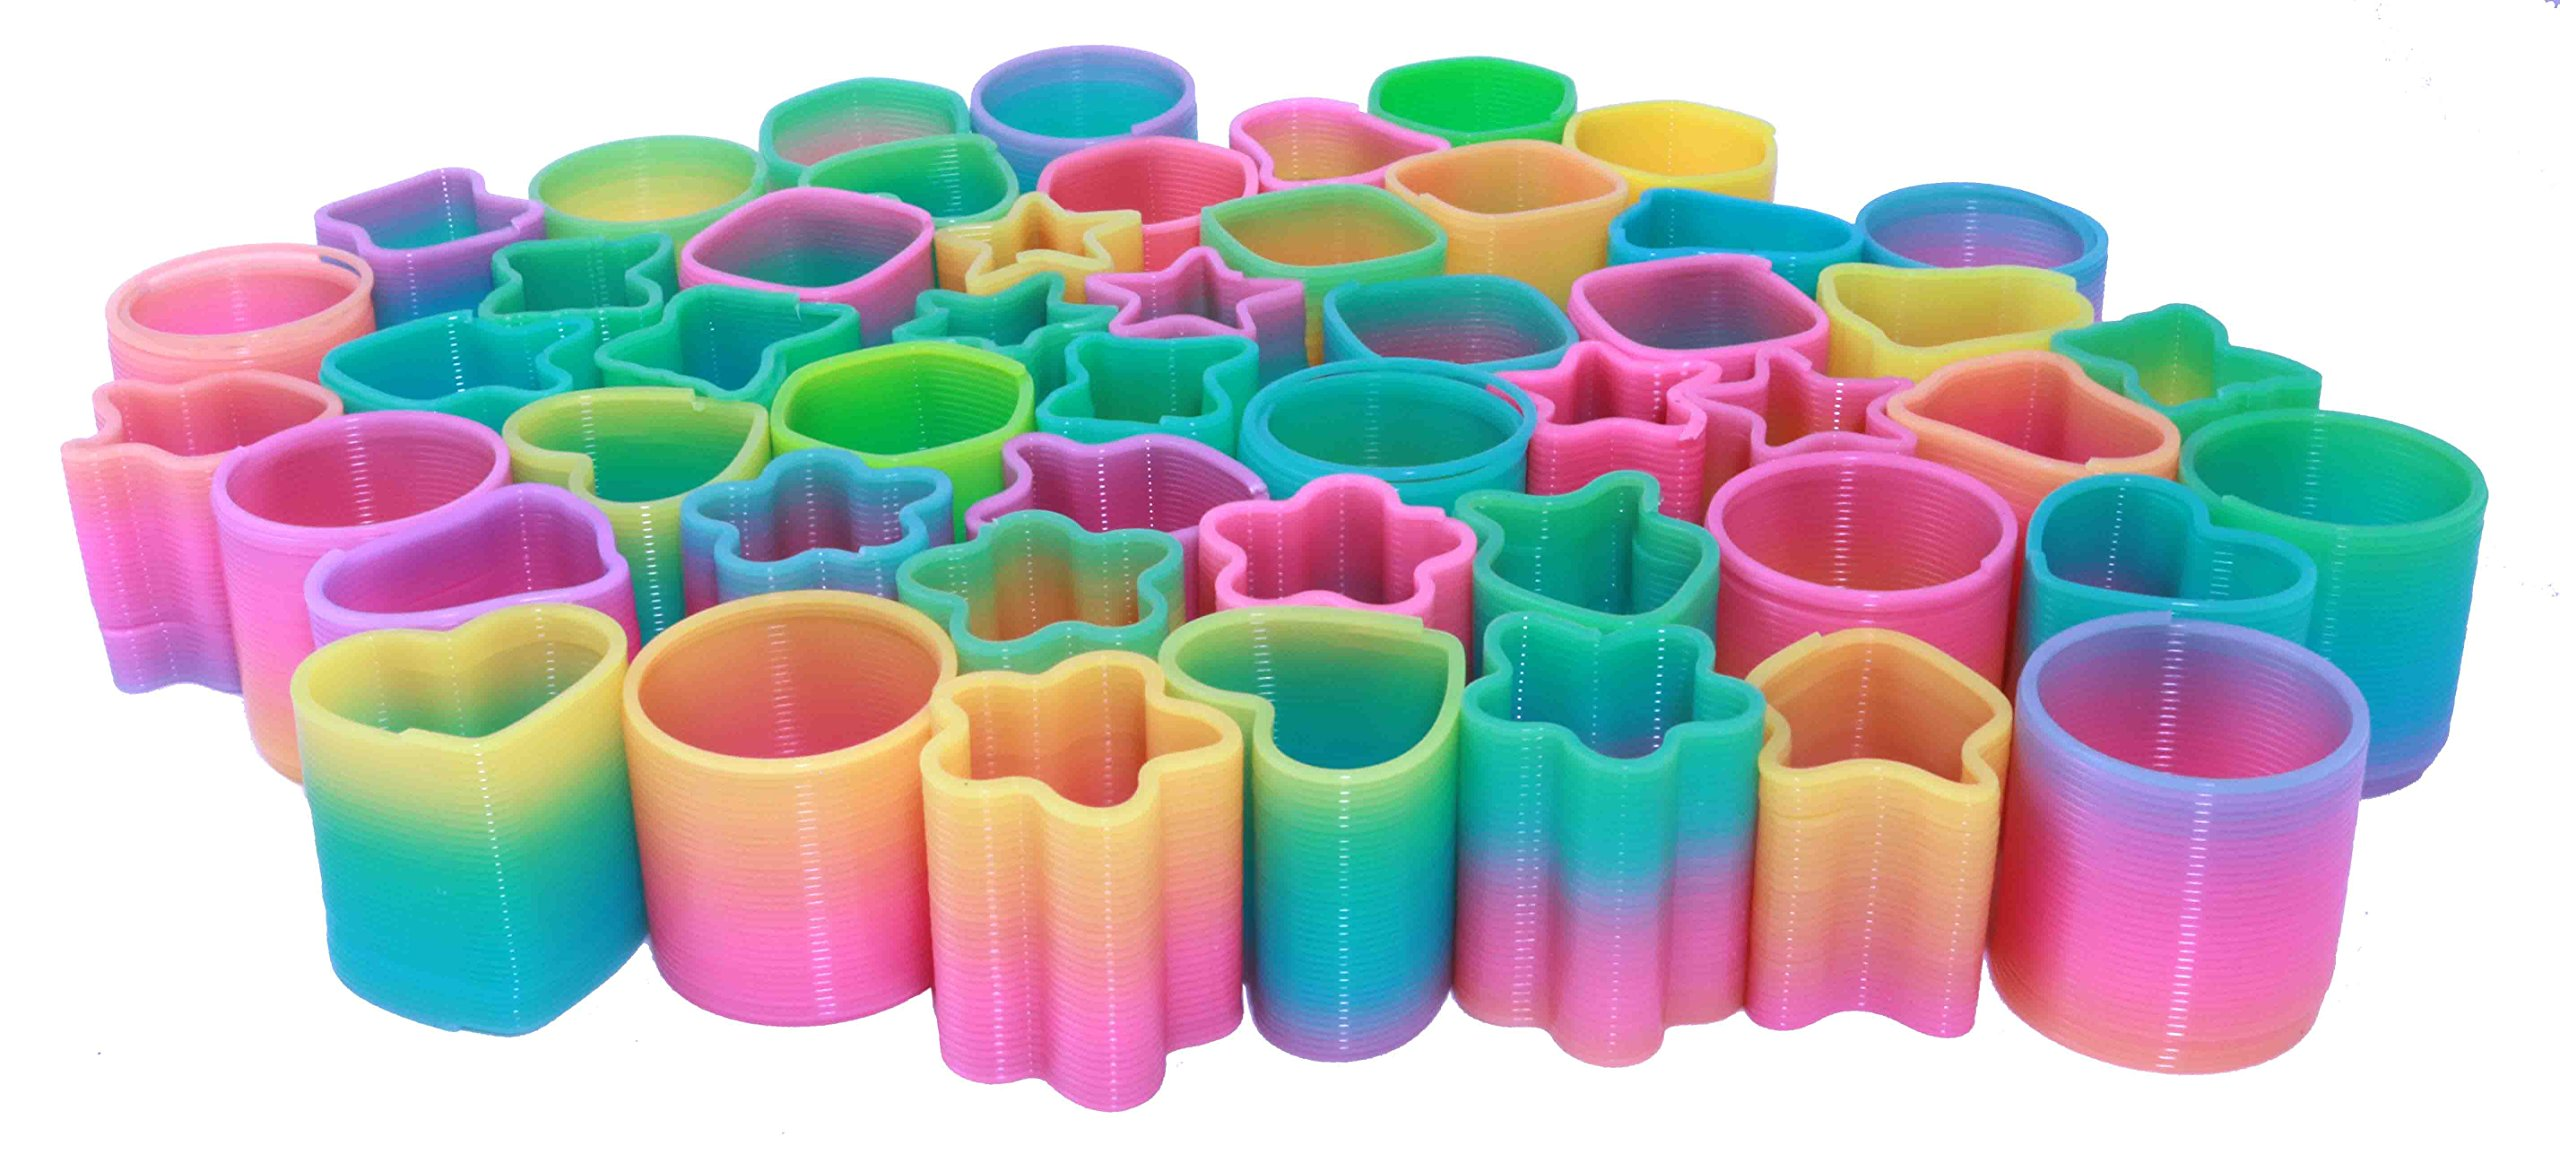 Mini Magic Spring Assortment - Bulk Pack Of 50 Rainbow Springs - Great Party Favor Spring Toy